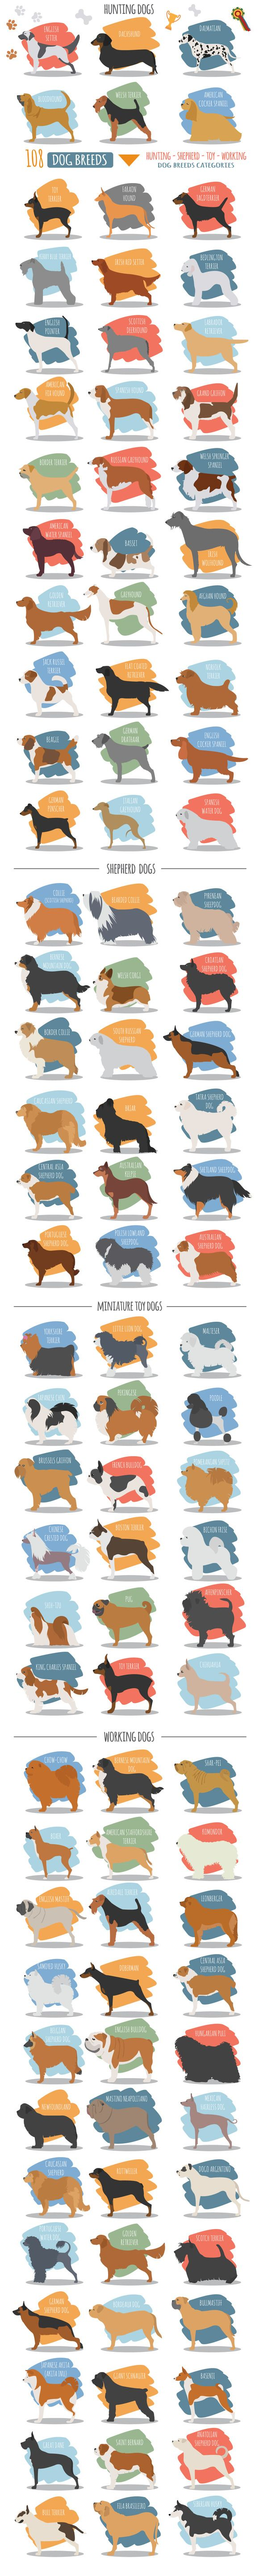 DOG breeds BIG set  @creativework247